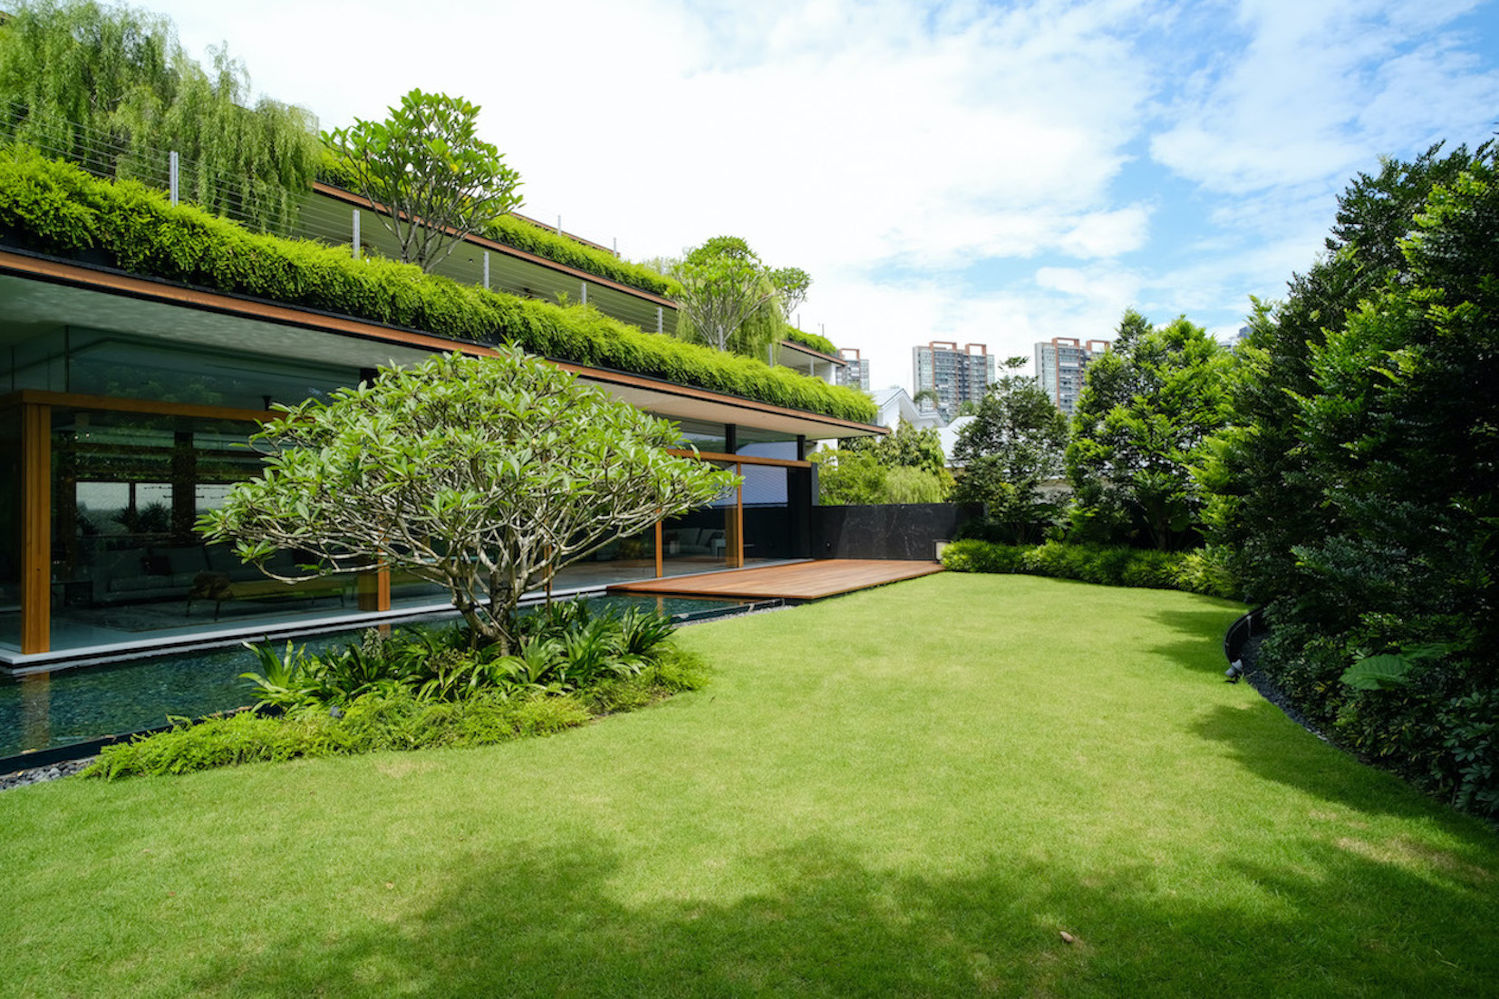 the house with luxuriant greenery - EDGEPROP SINGAPORE